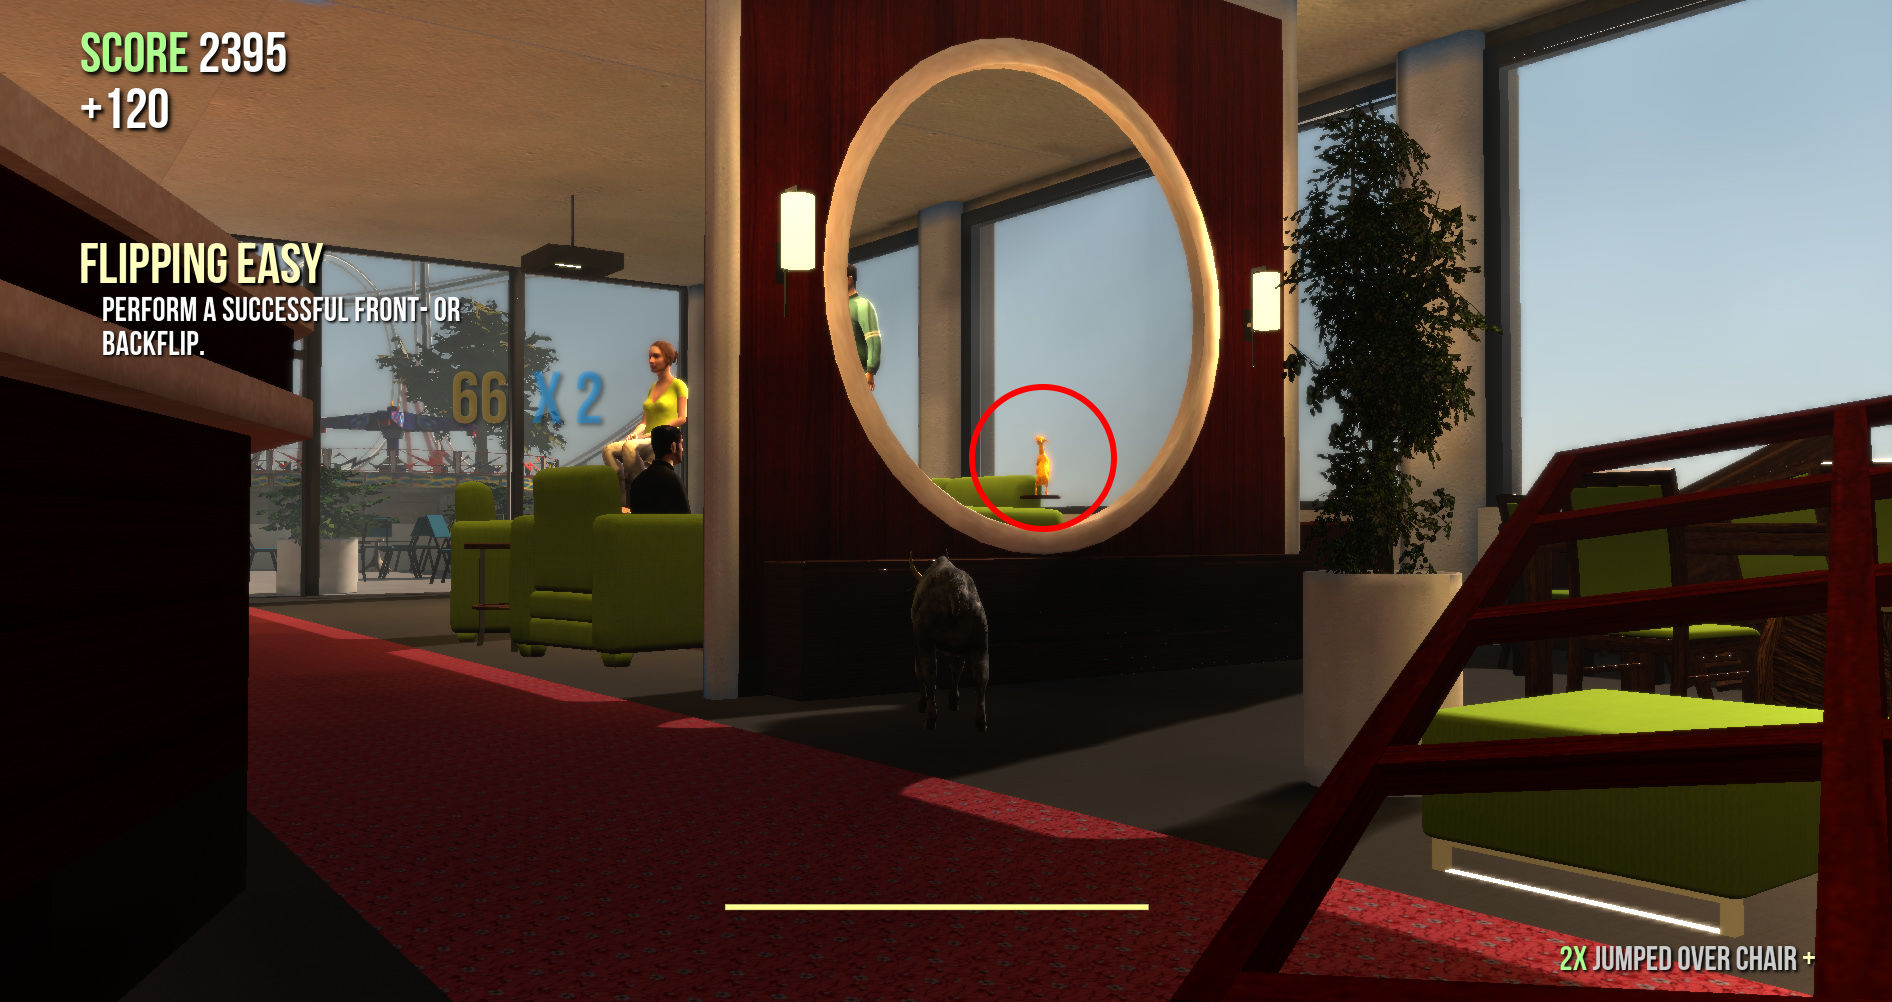 Goat Simulator Patch 1 1: All 30 Golden Goat Trophy Locations Guide